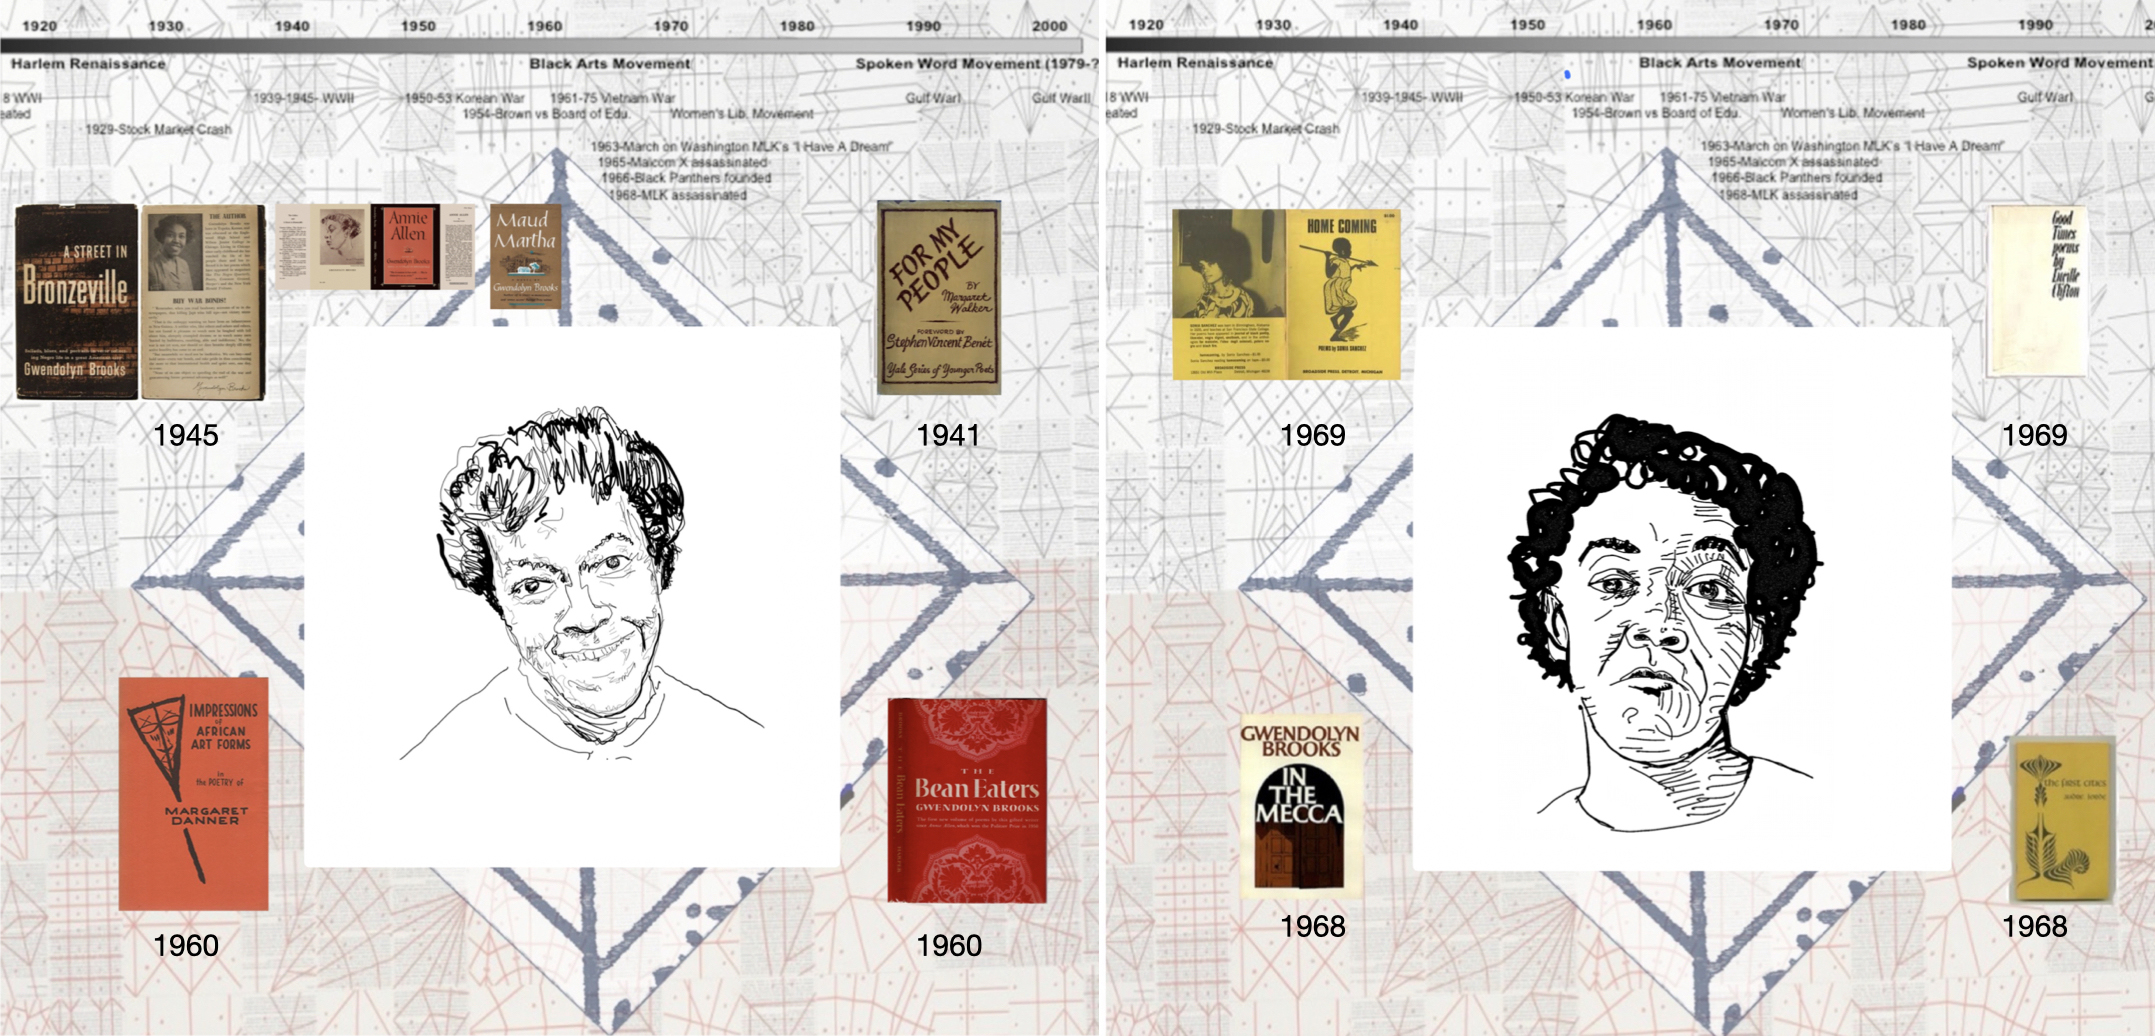 Gwendolyn Brooks timeline by Terrance Hayes, positioning her and her publishing history against key events of her lifetime